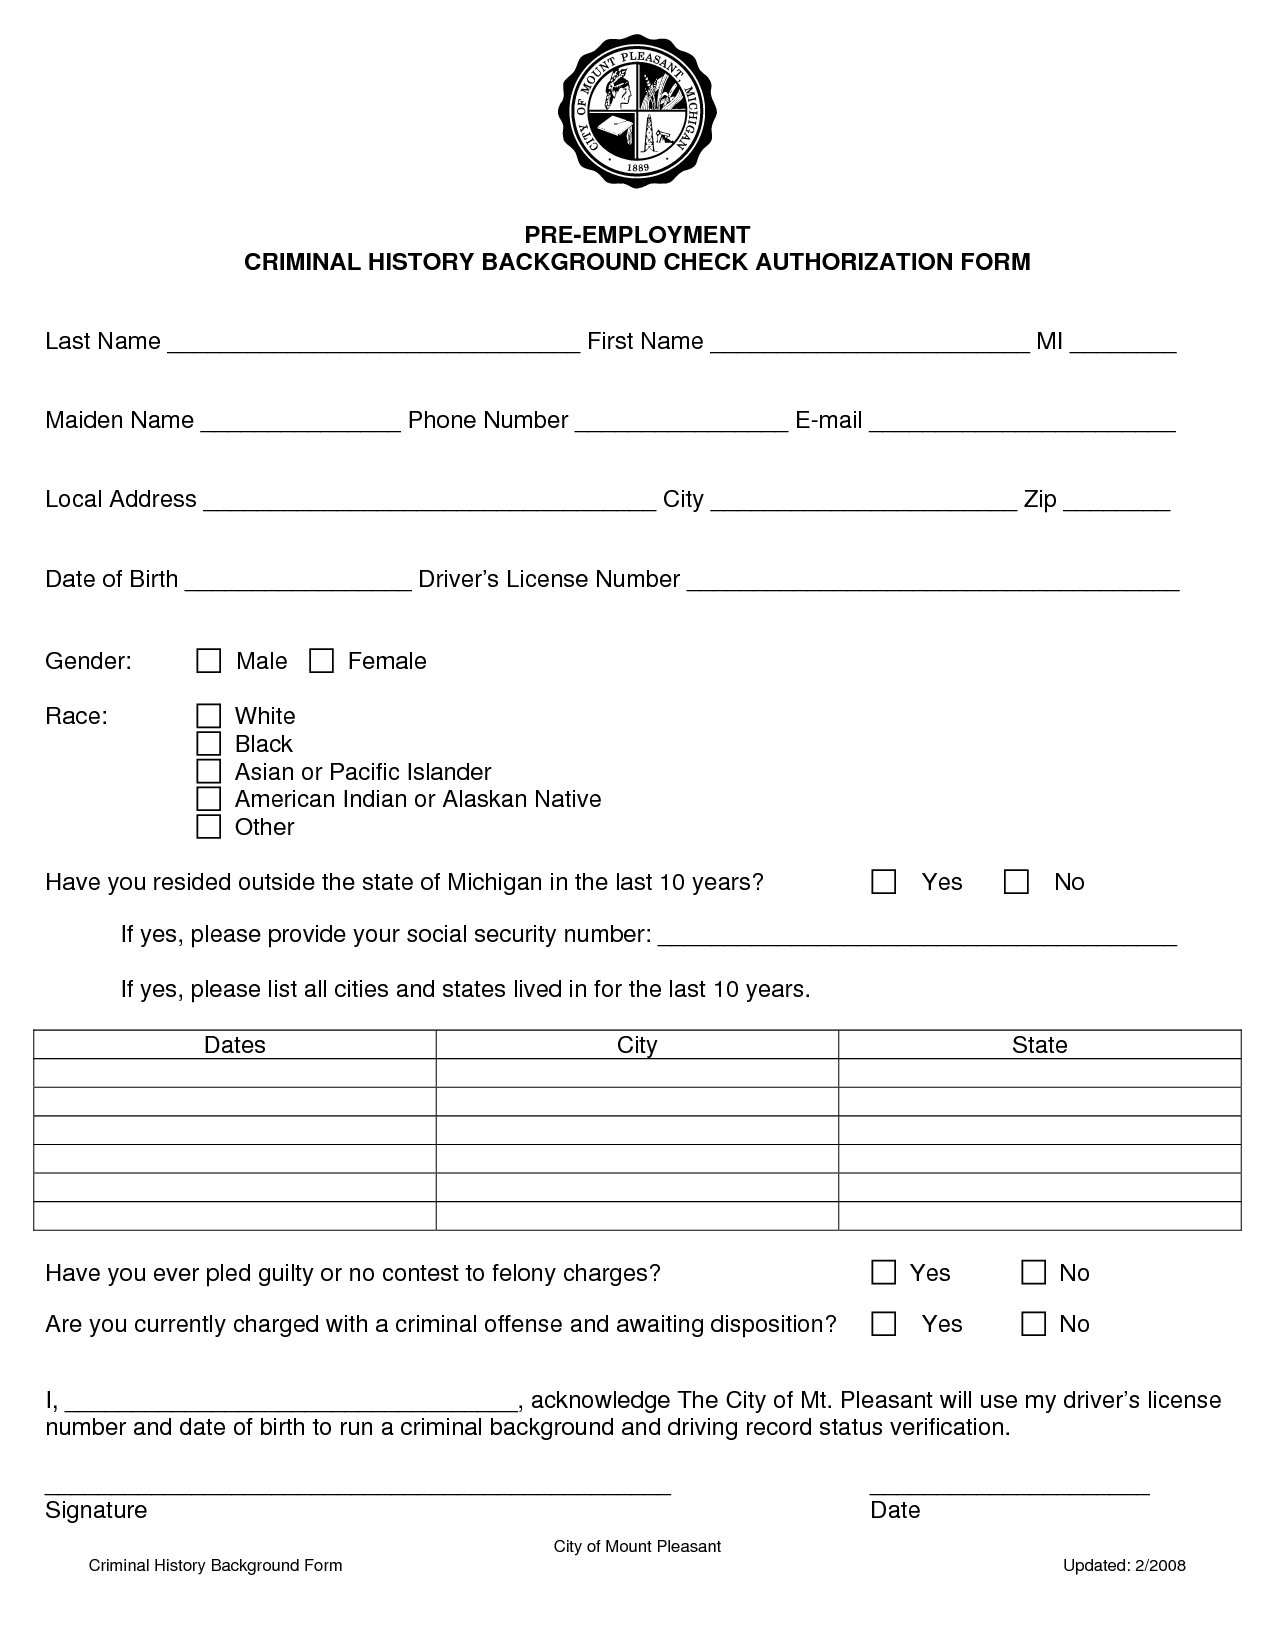 Employment Background Check Consent Form Inquire Before Your Hire